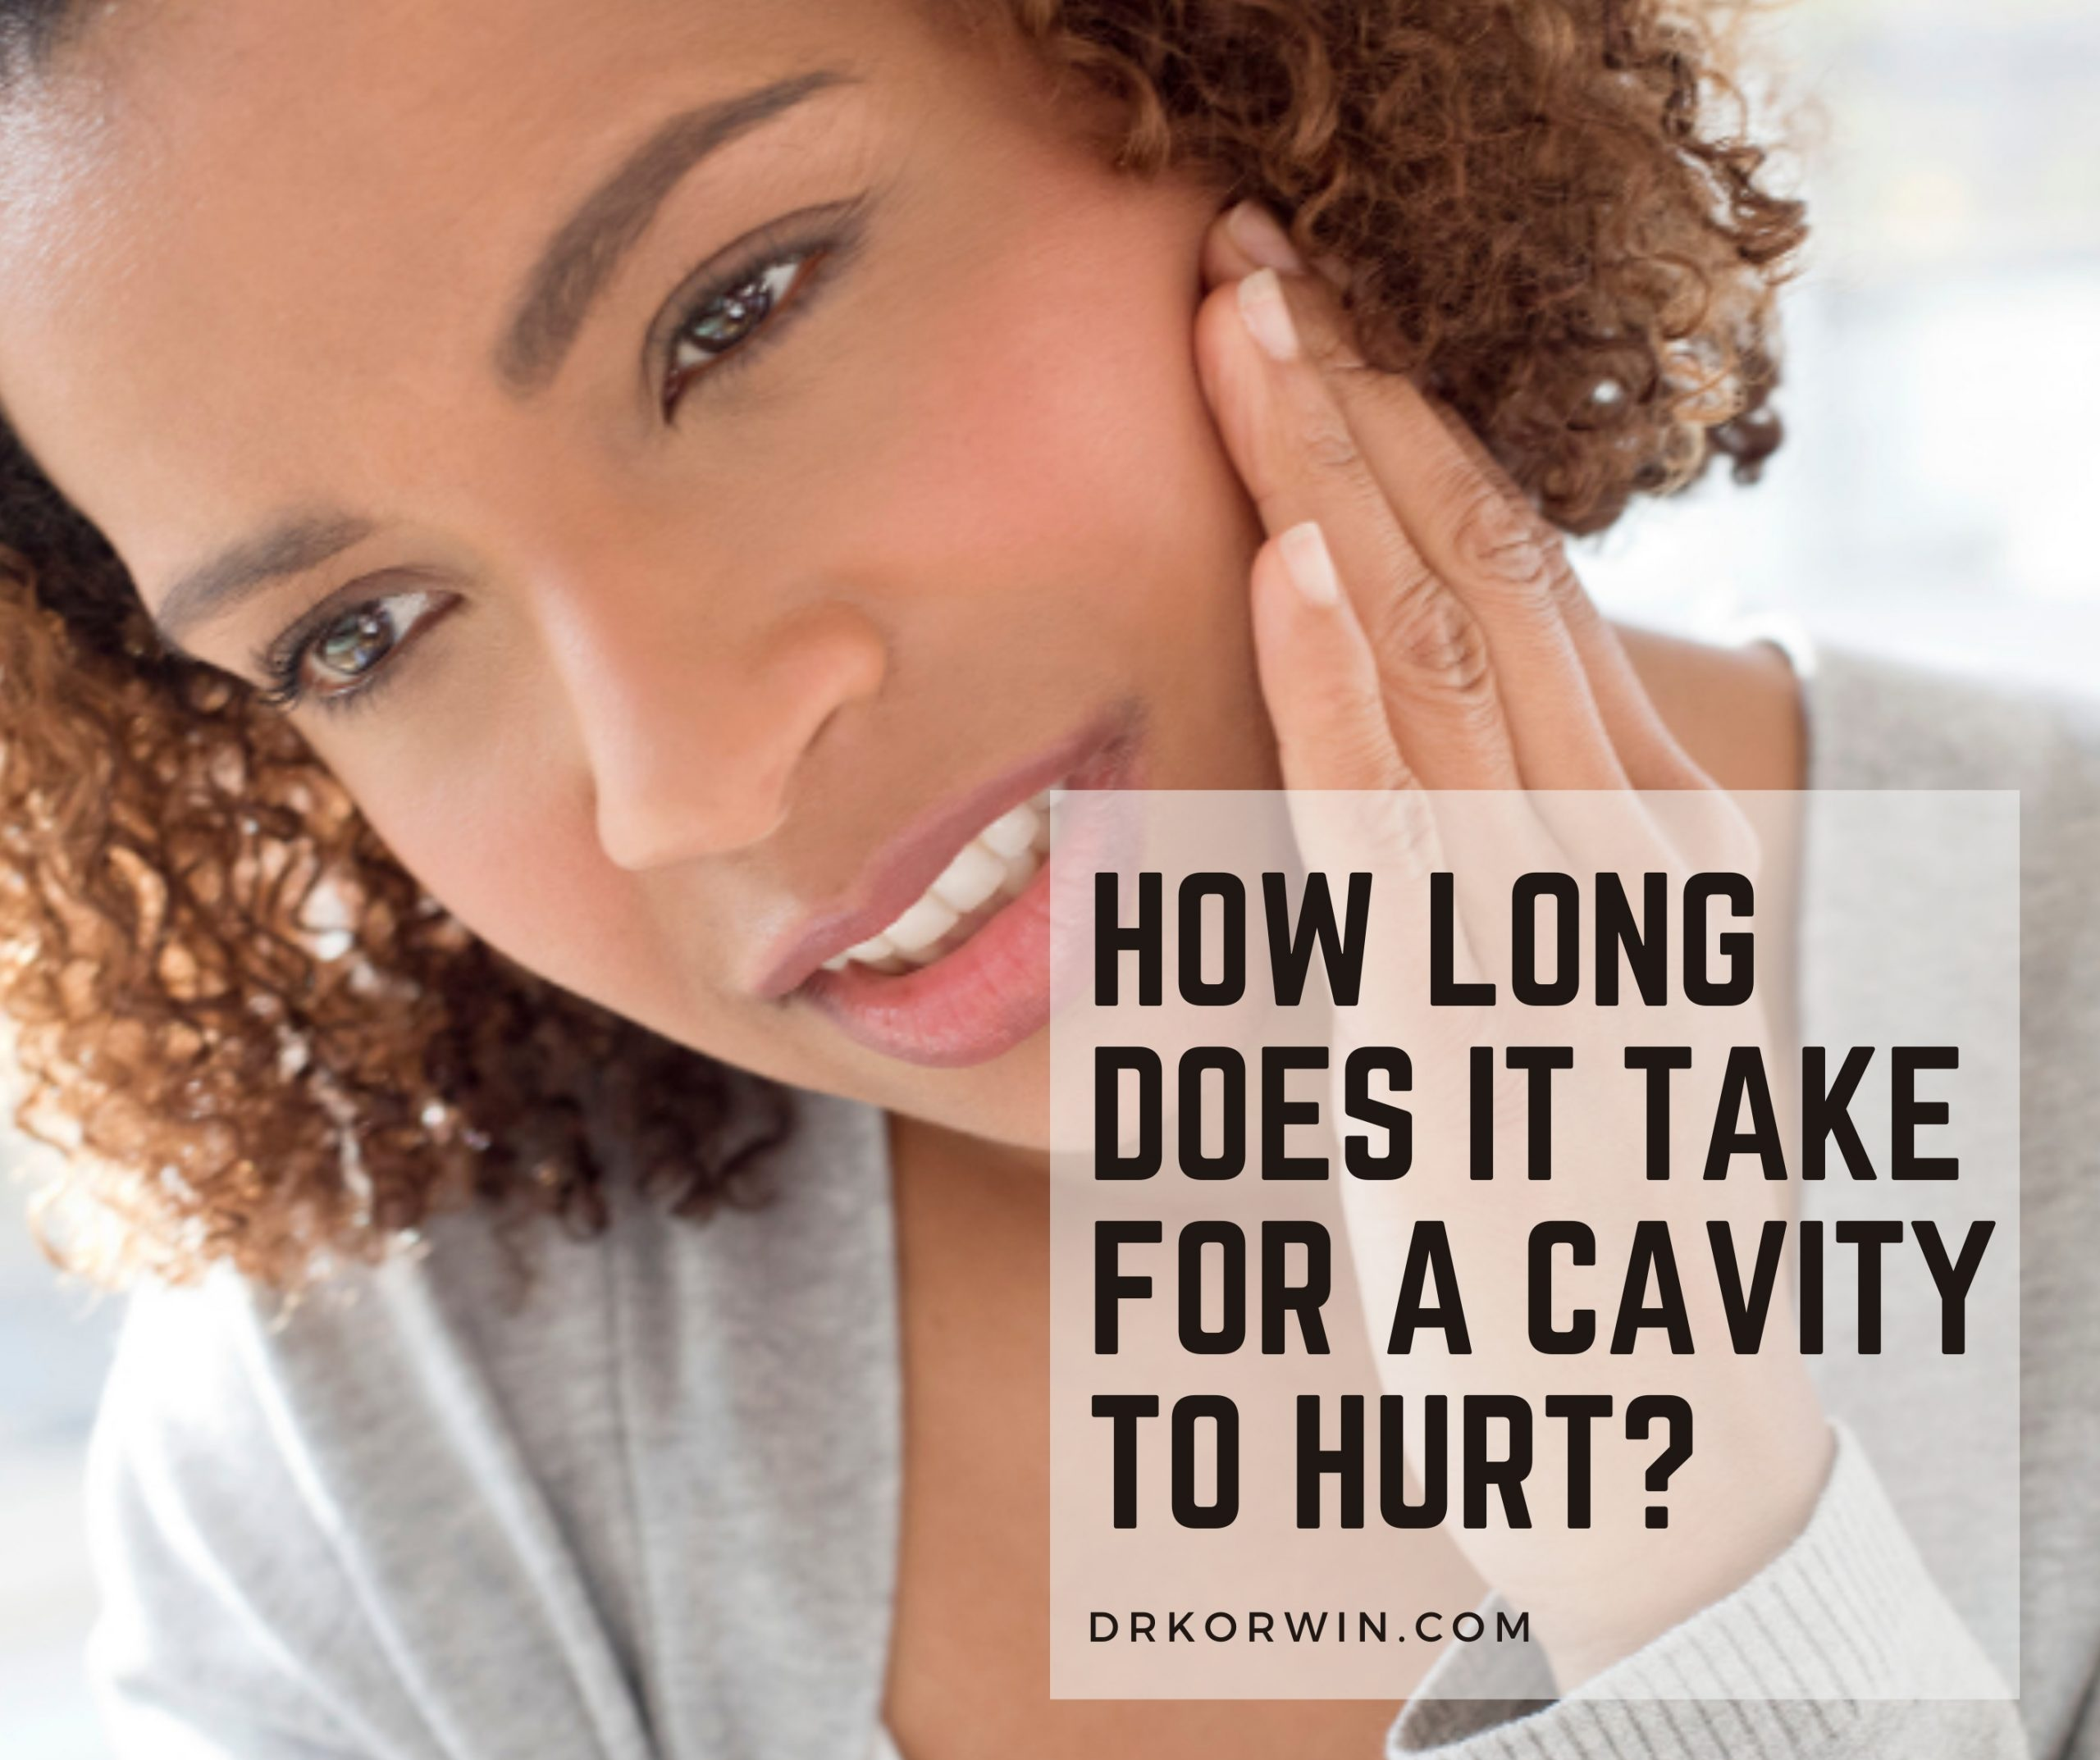 Should you wait till your tooth hurts?